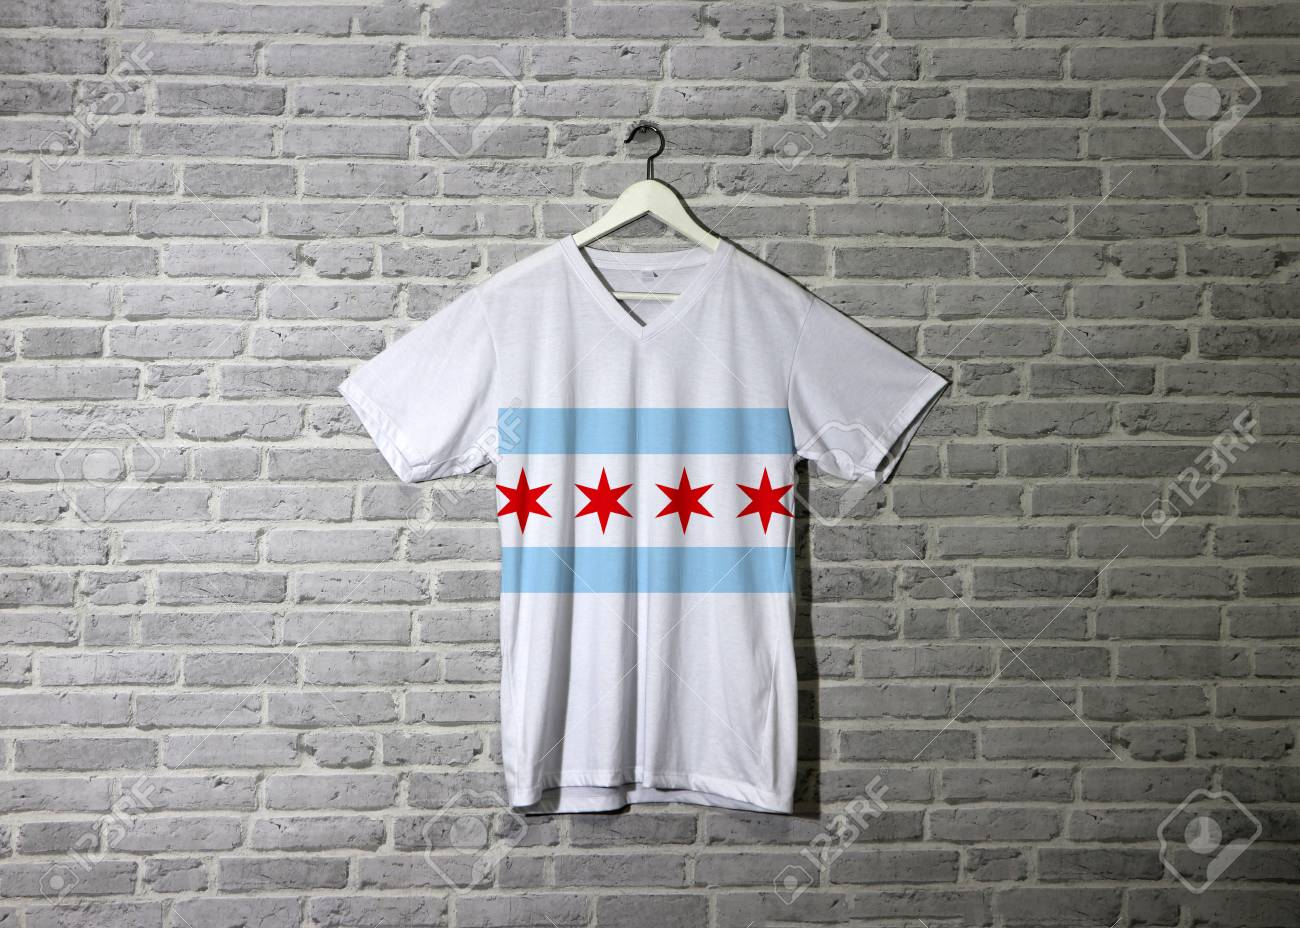 Chicago Flag On Shirt And Hanging On The Wall With Brick Pattern 1300x928